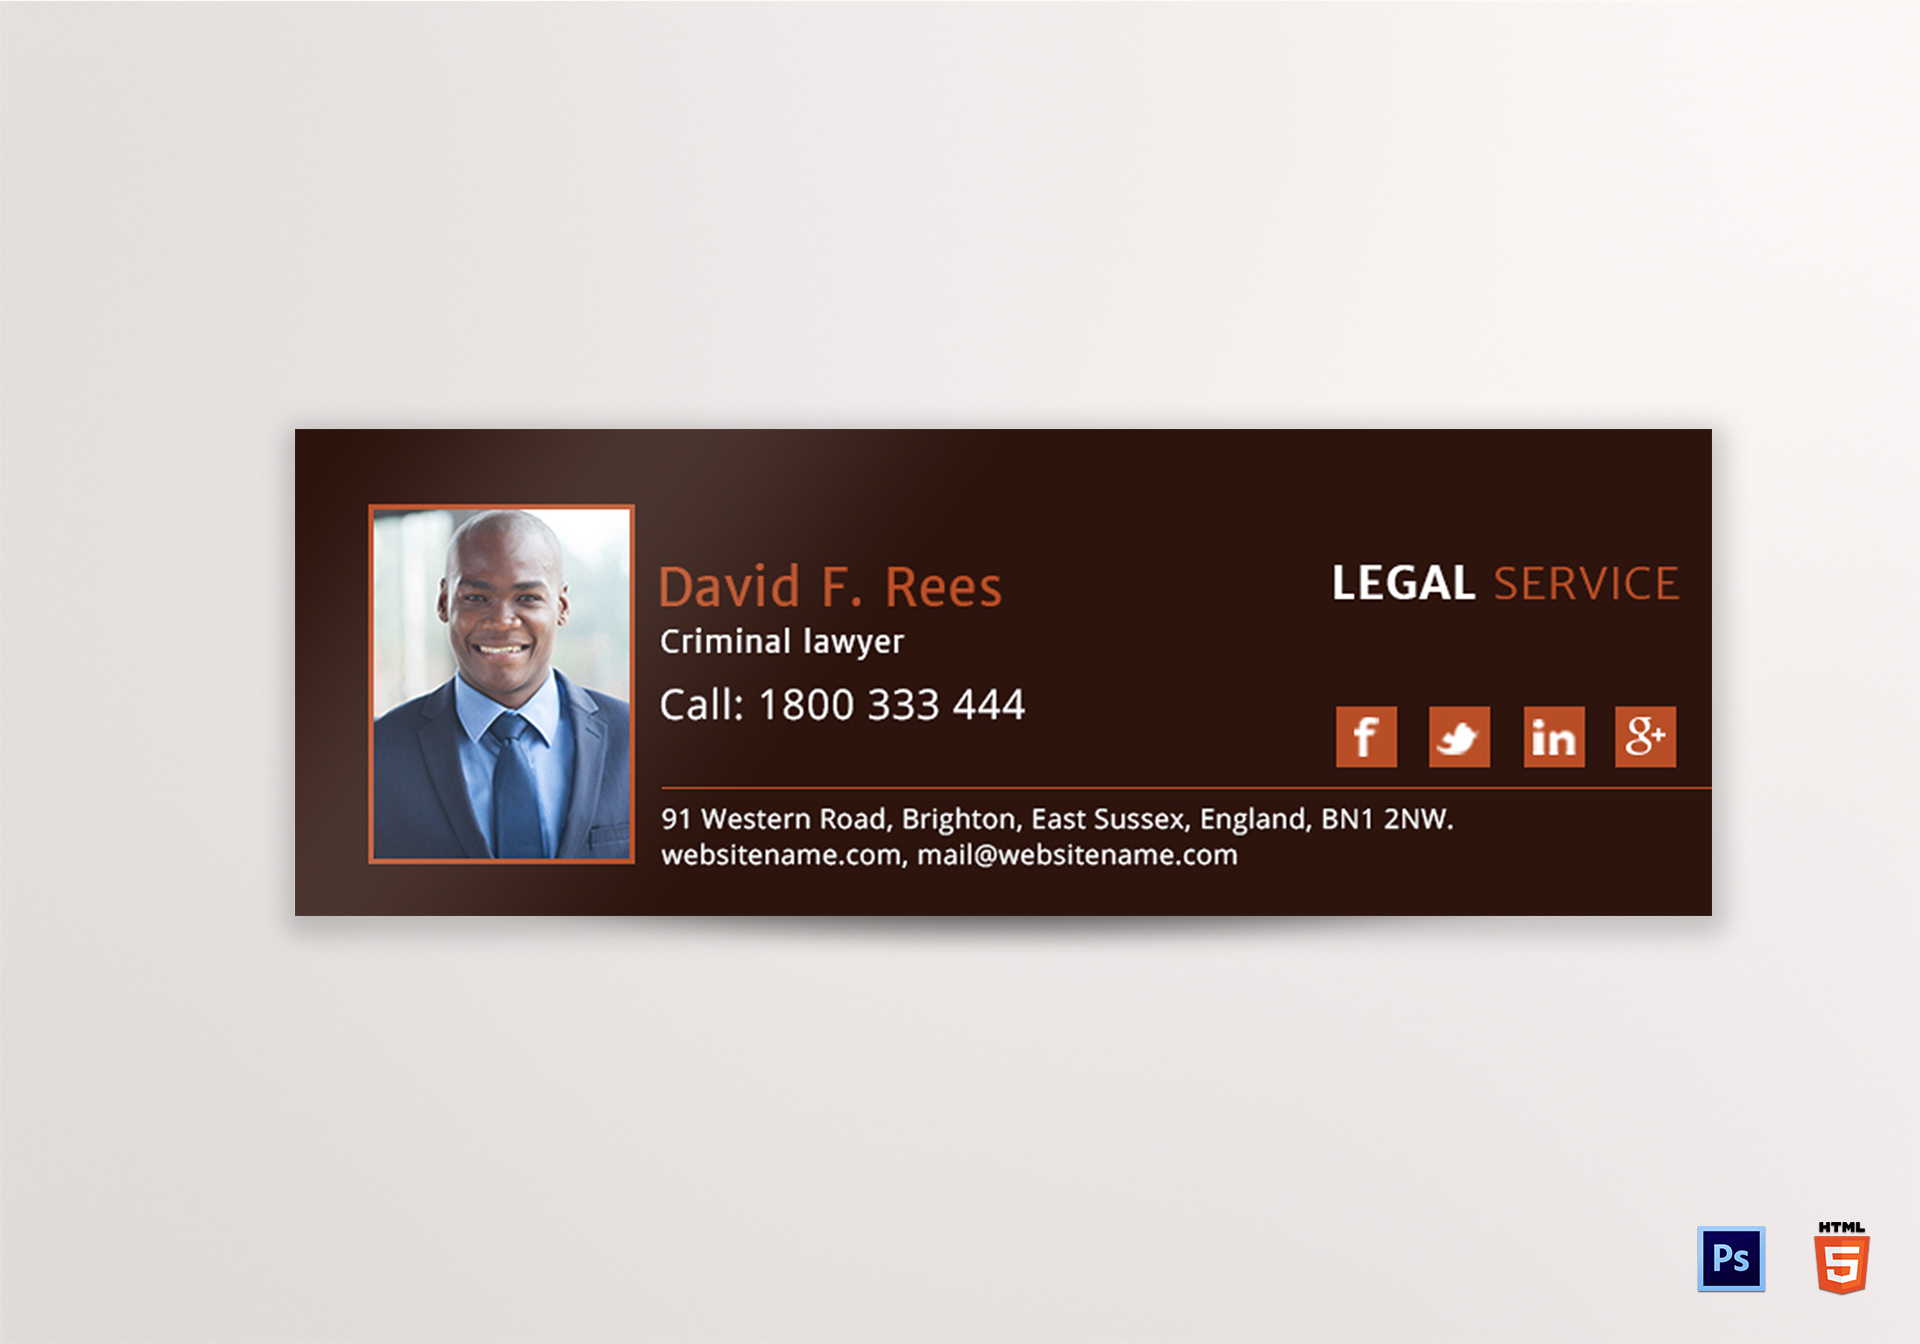 Legal Services Email Signature Template